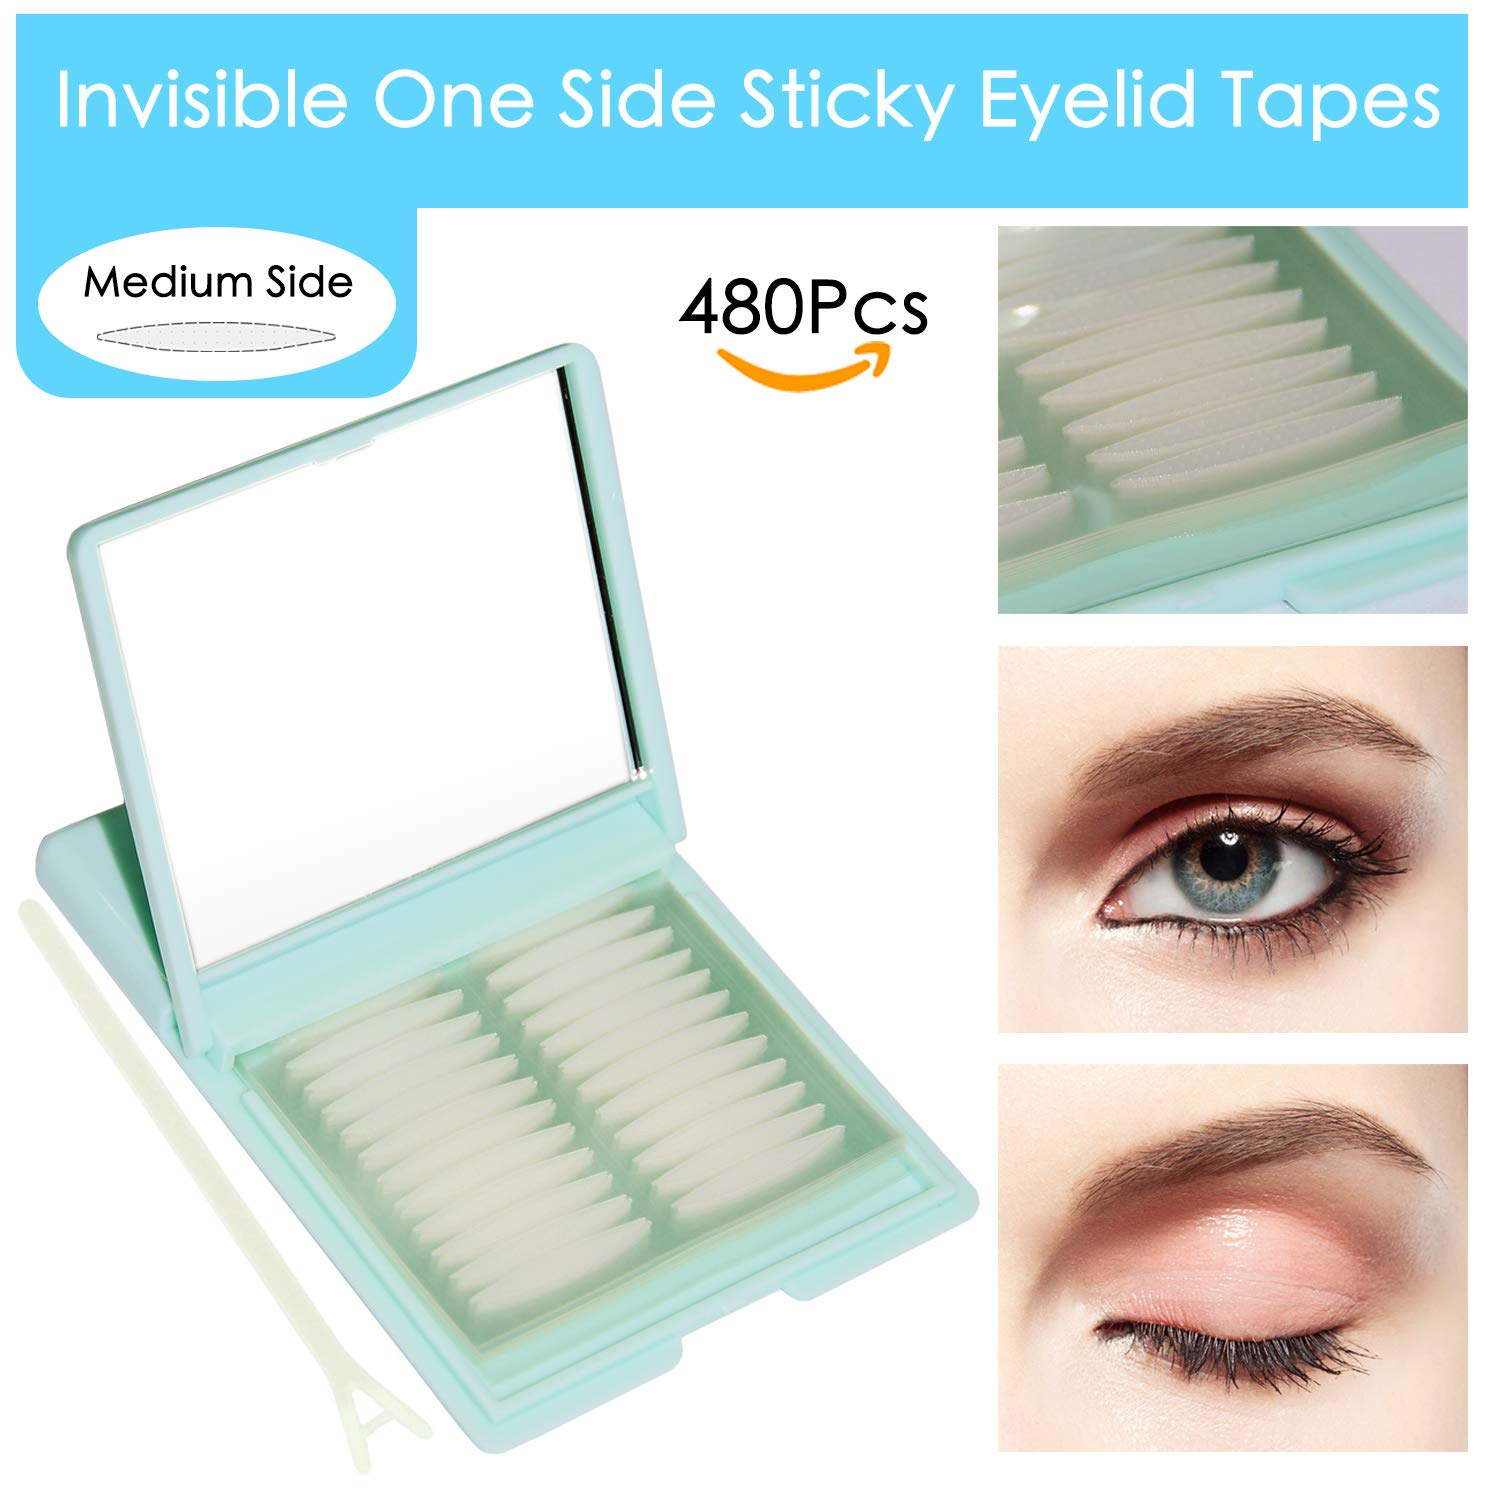 Medical-use Fiber Eyelid Tapes - 480Pcs/240 Pairs Invisible Single Side Sticky Double Eyelid Stickers - Instant Eye Lid Lift Without Surgery, Perfect for Hooded Droopy Uneven or Mono-eyelids (Medium)